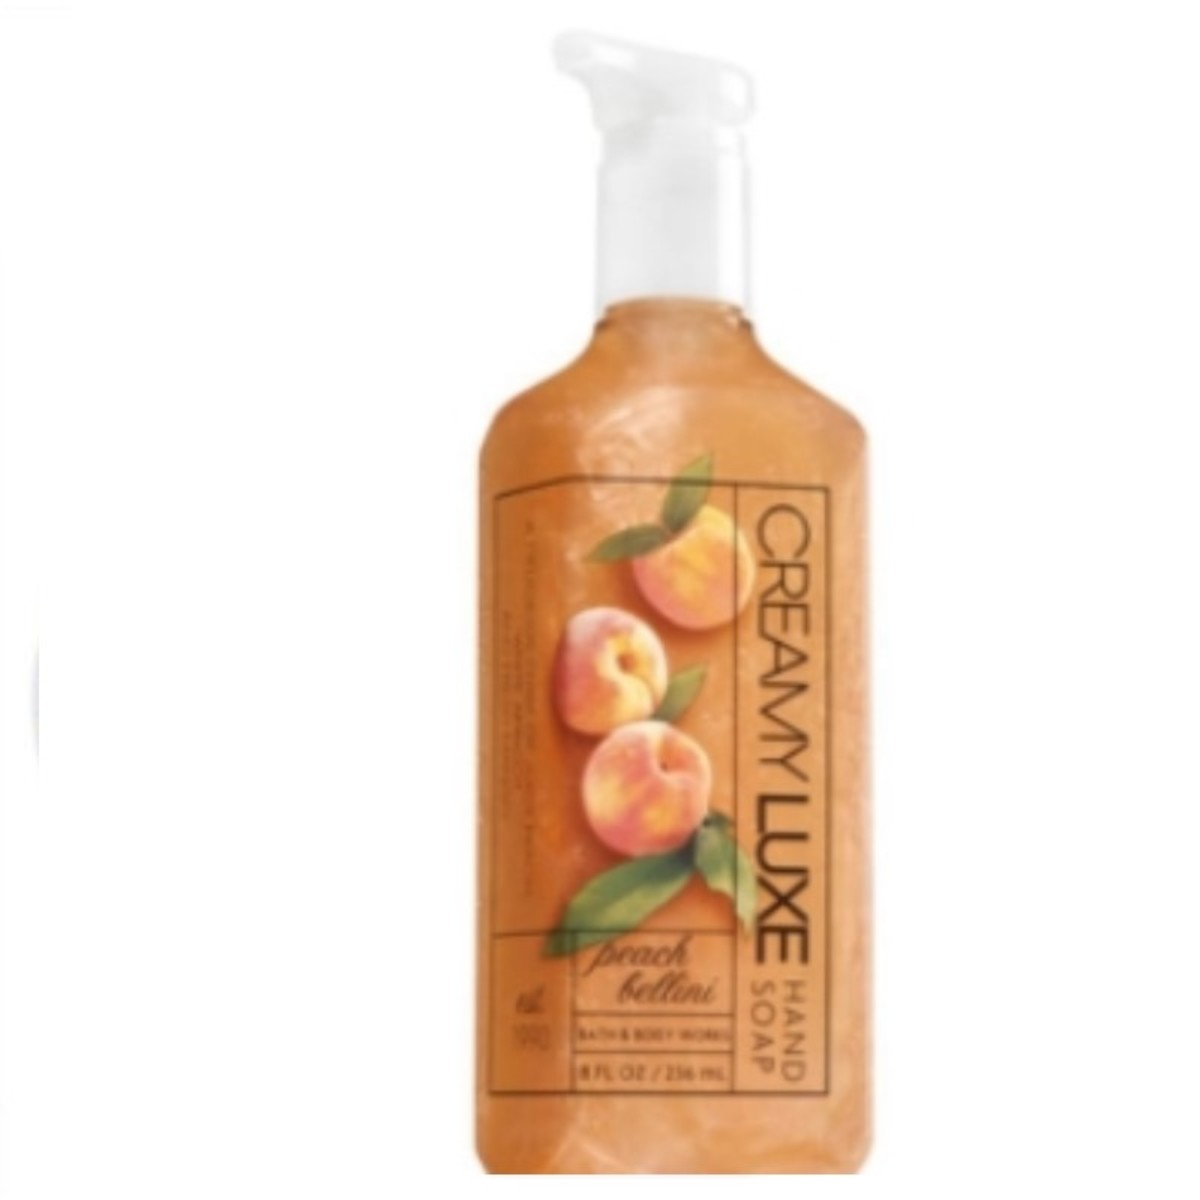 Creamy Luxe Hand Soap(Parallel Imports Product)